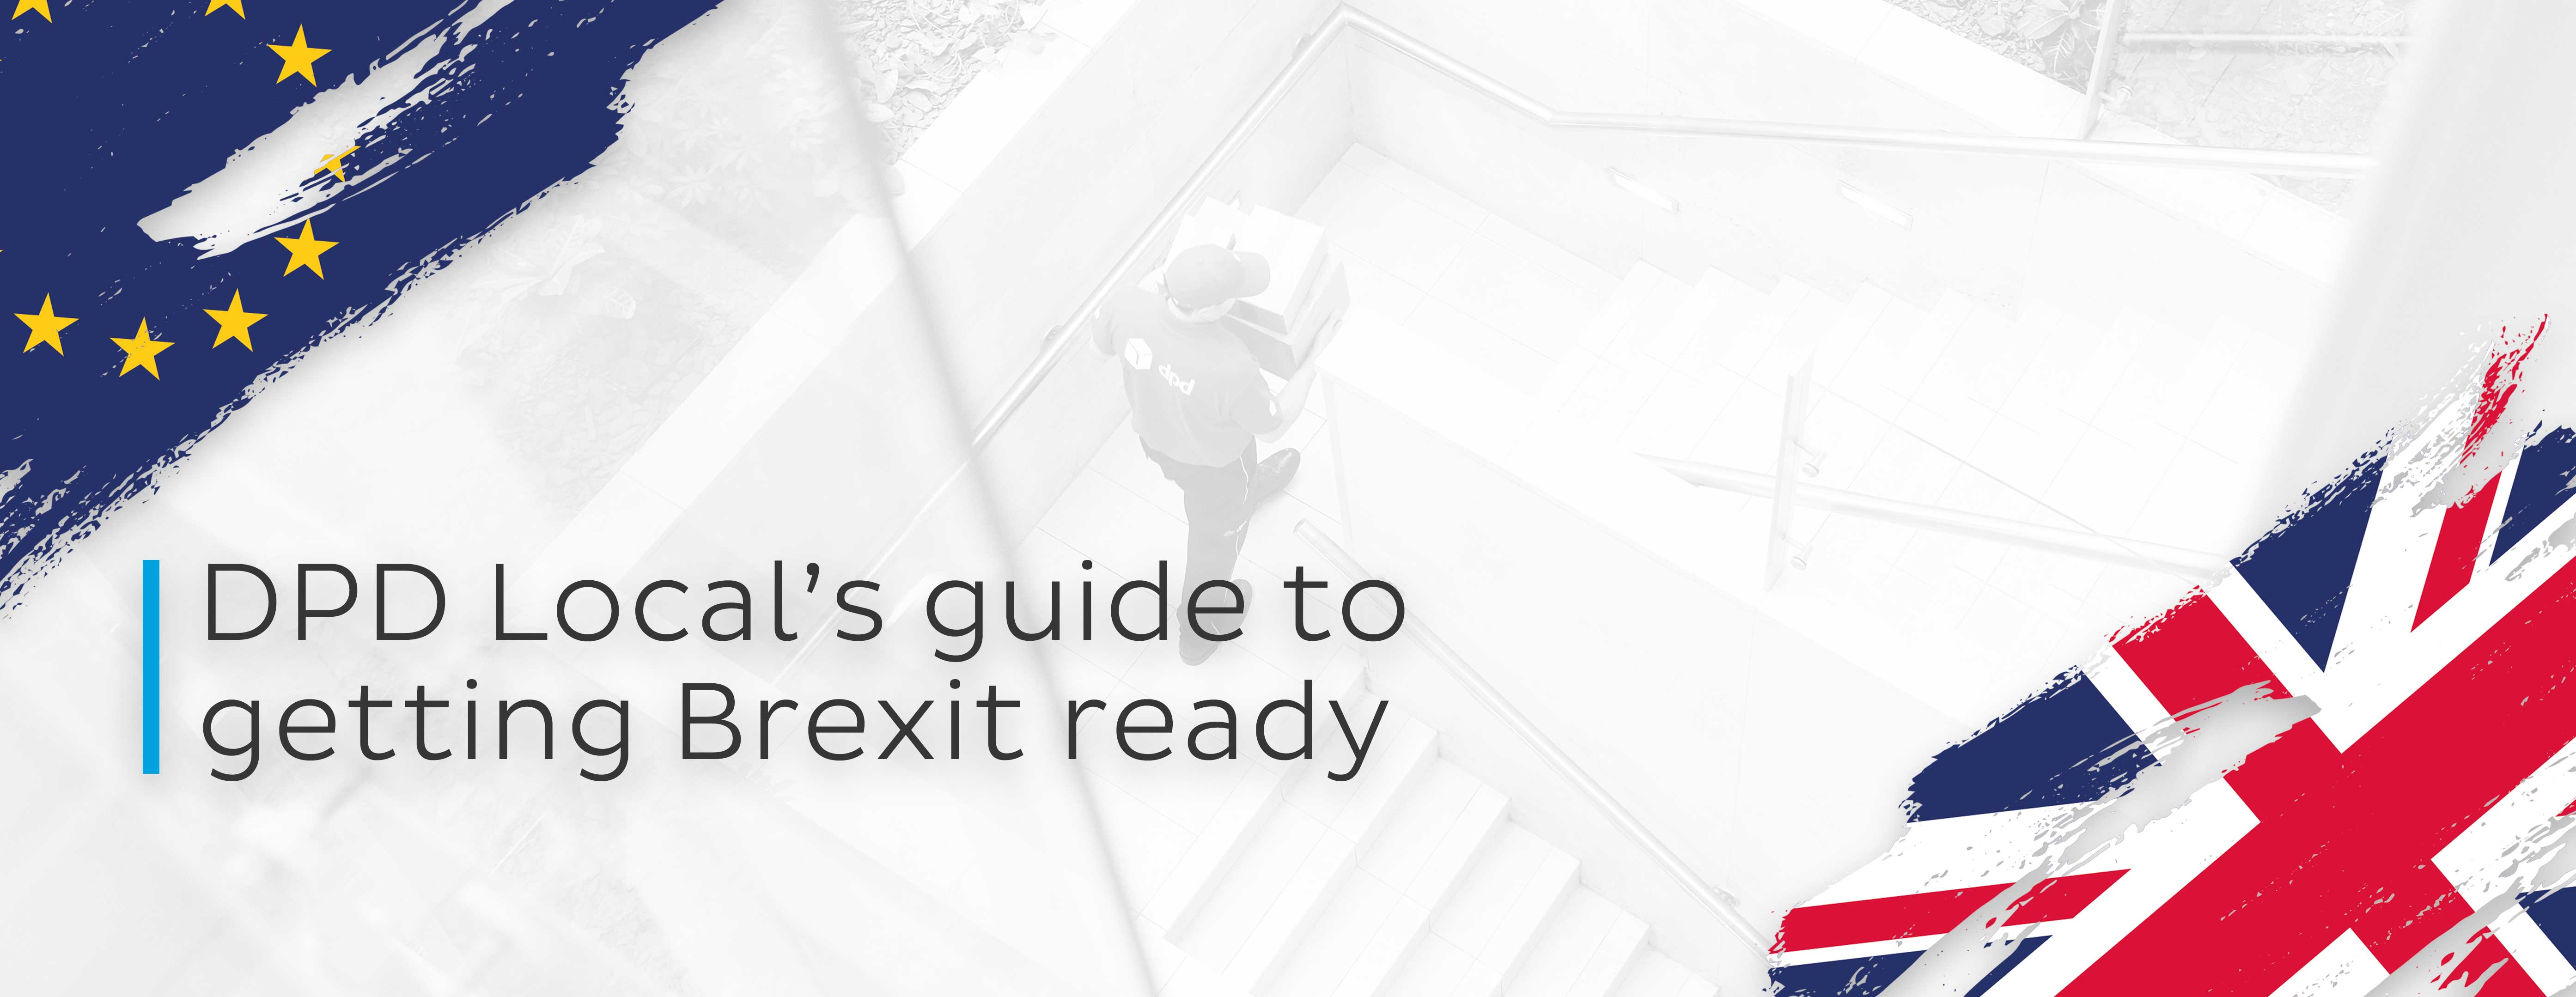 DPD Local's guide to getting Brexit ready